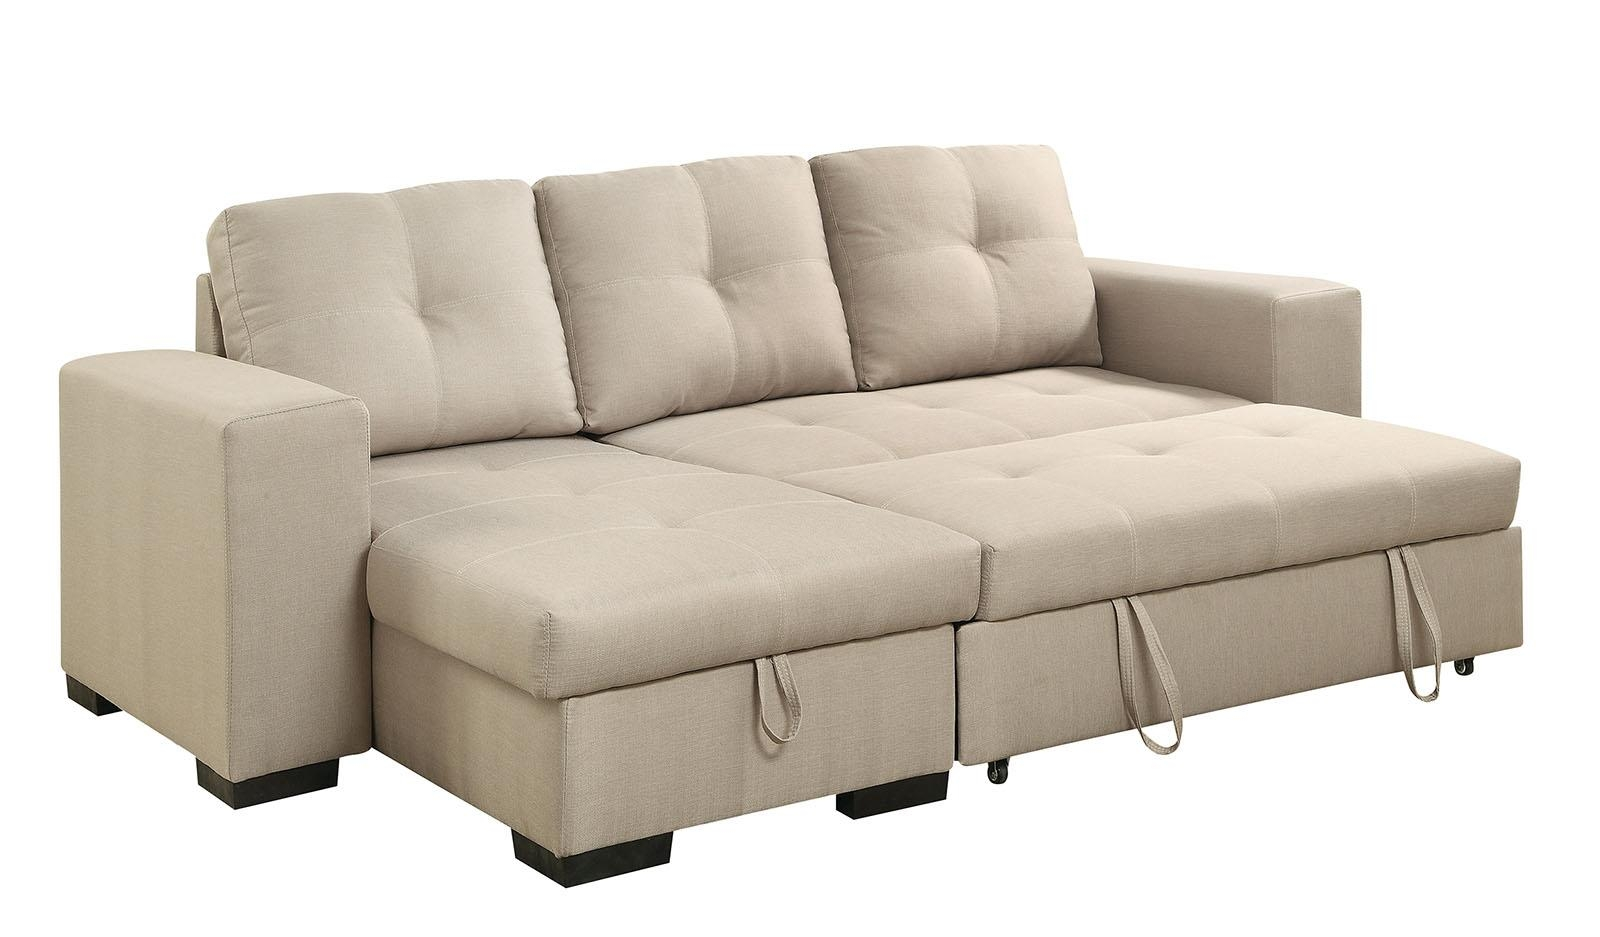 Denton Contemporary Style Ivory Fabric Sofa Sectional W/ Pull Out Bed Regarding Pull Out Sectional (View 6 of 20)